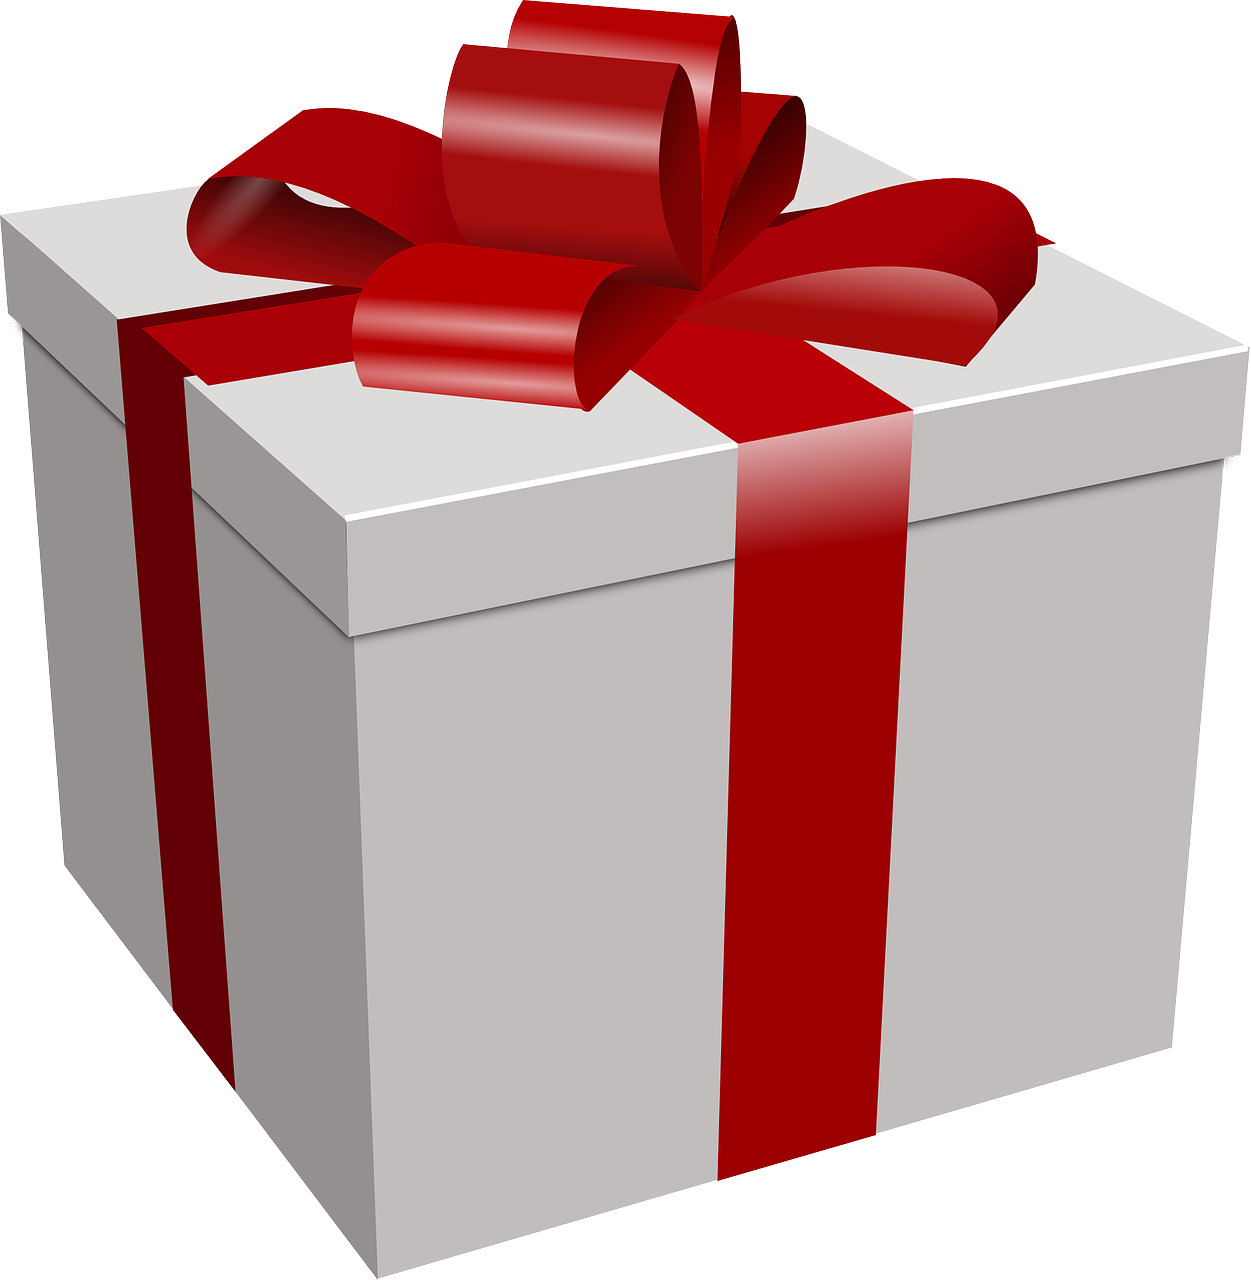 Png regalo transparent regalo png images pluspng - Regalos de muebles gratis ...